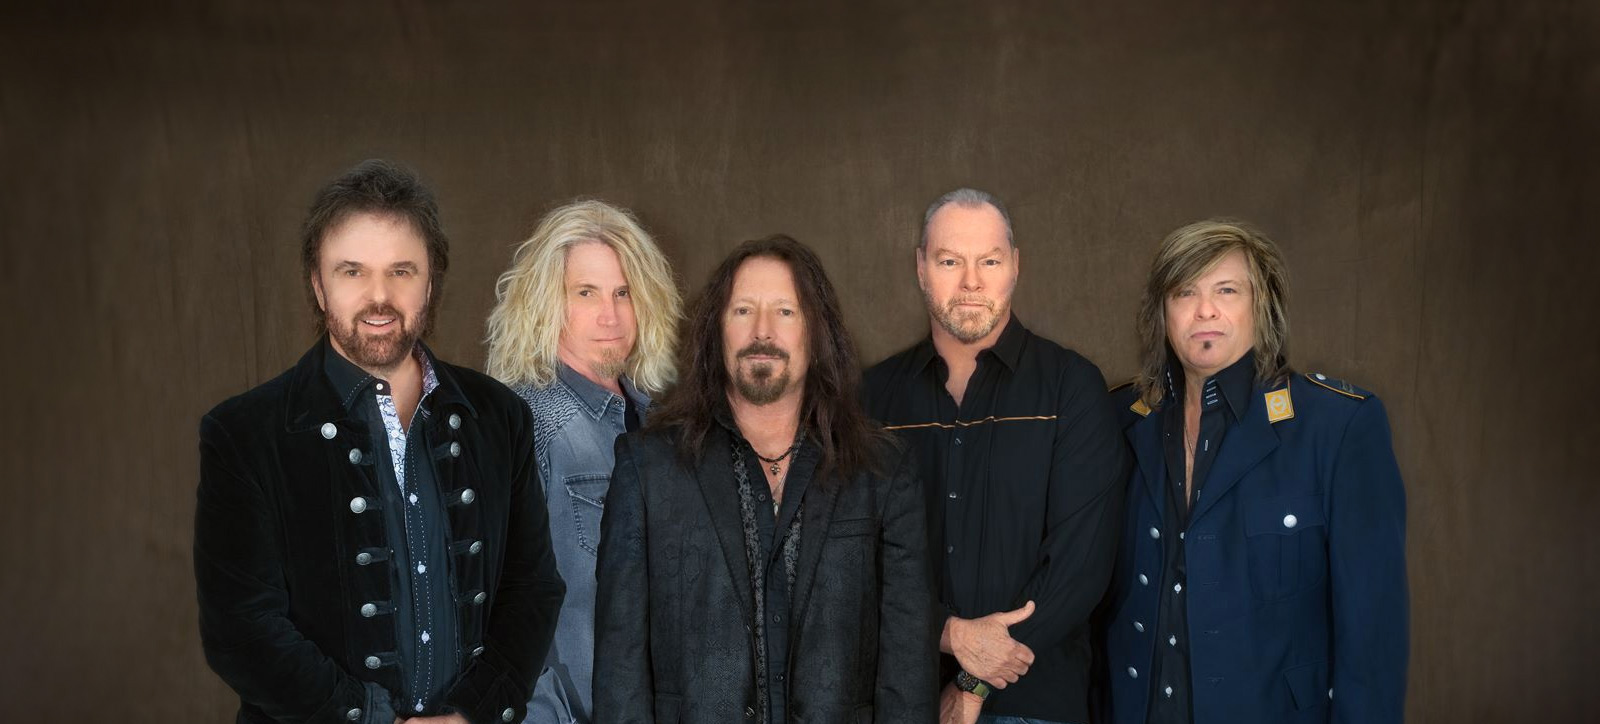 38 Special: The Band